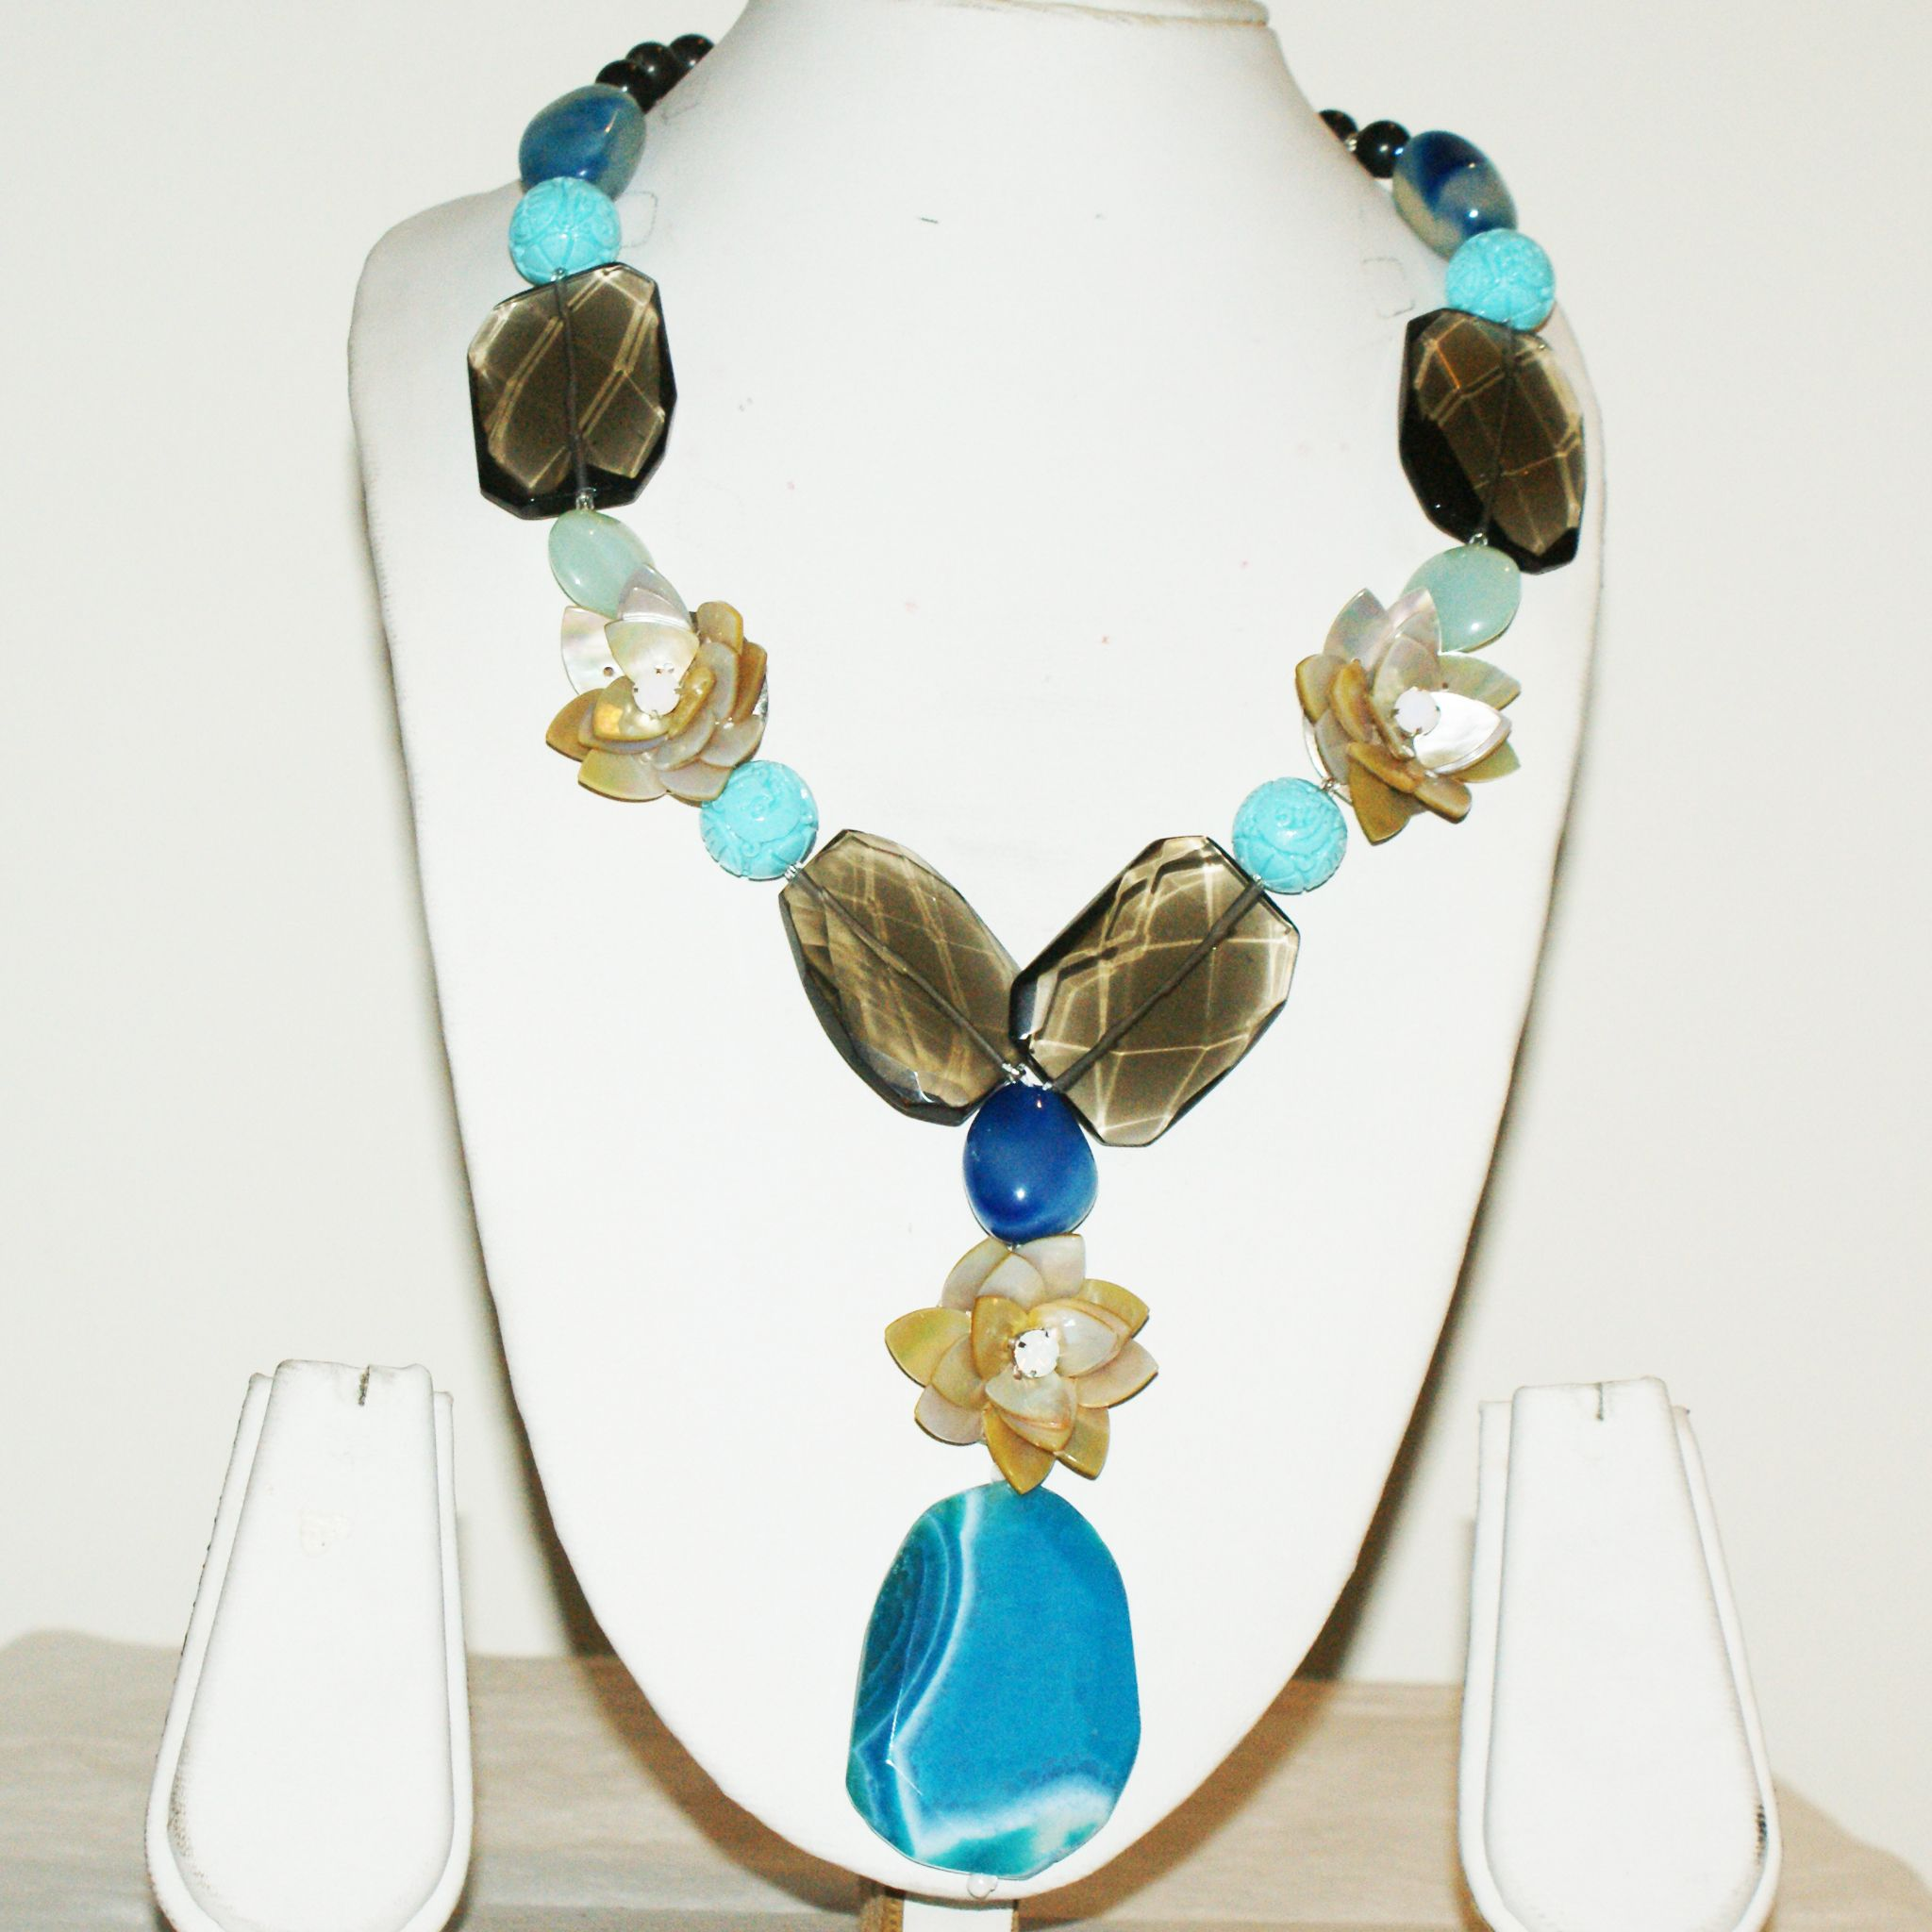 Raw blue Volcanic Stone Plate Pendant Necklace with contrasting embellishments of stones, flowers and crystal. Raw, yet intrinsically delicate!